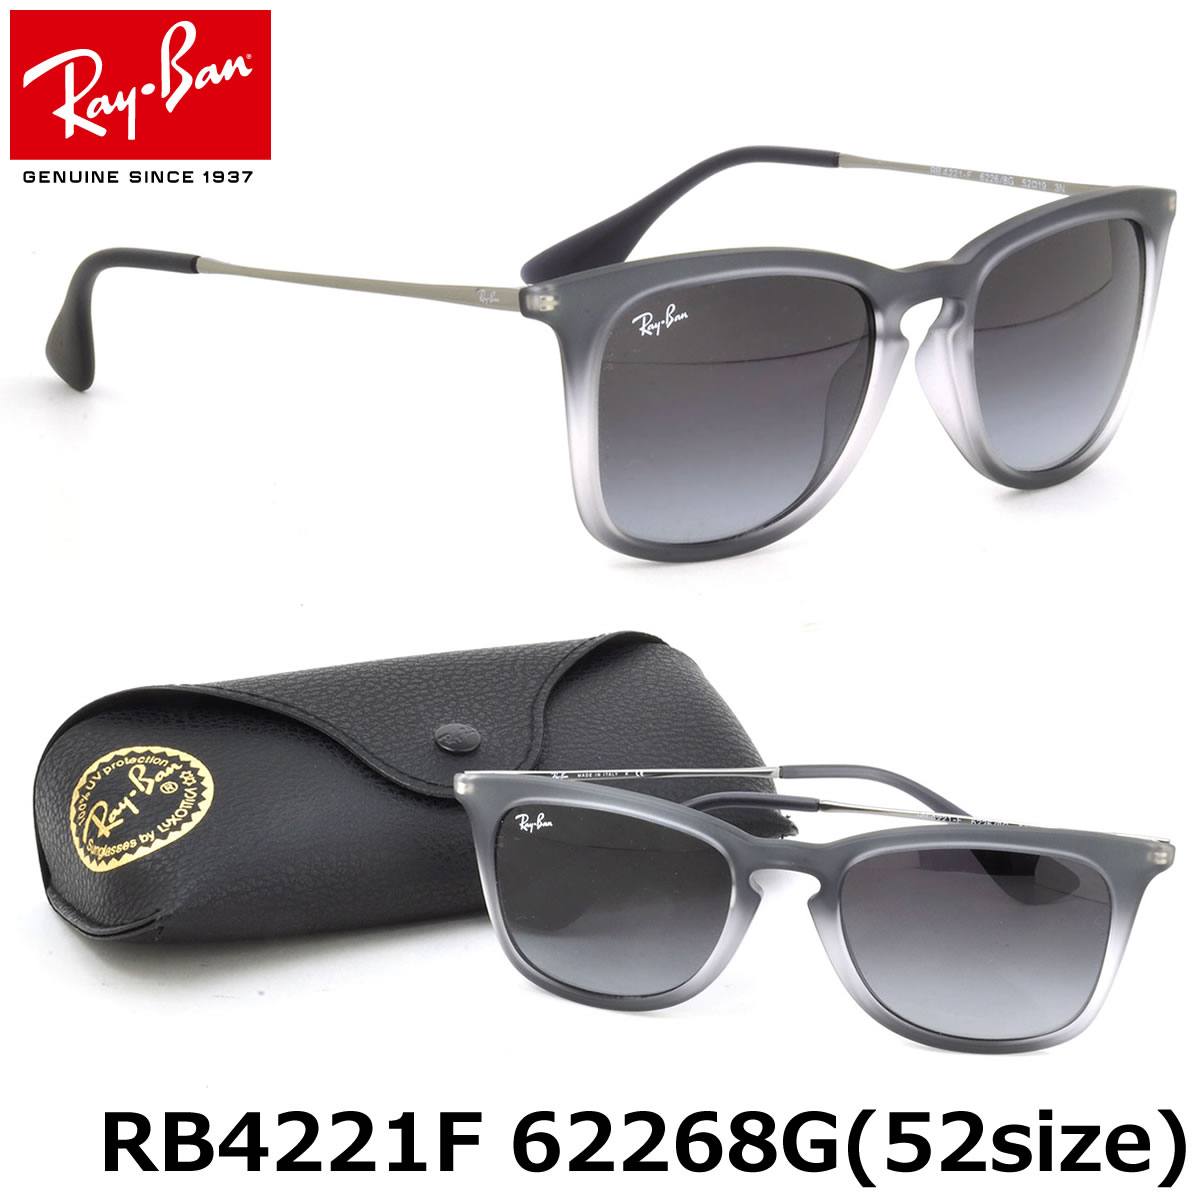 59d61ad6da Optical Shop Thats  Ray-Ban Sunglasses RB4221F 62268G 52size GENUINE ...